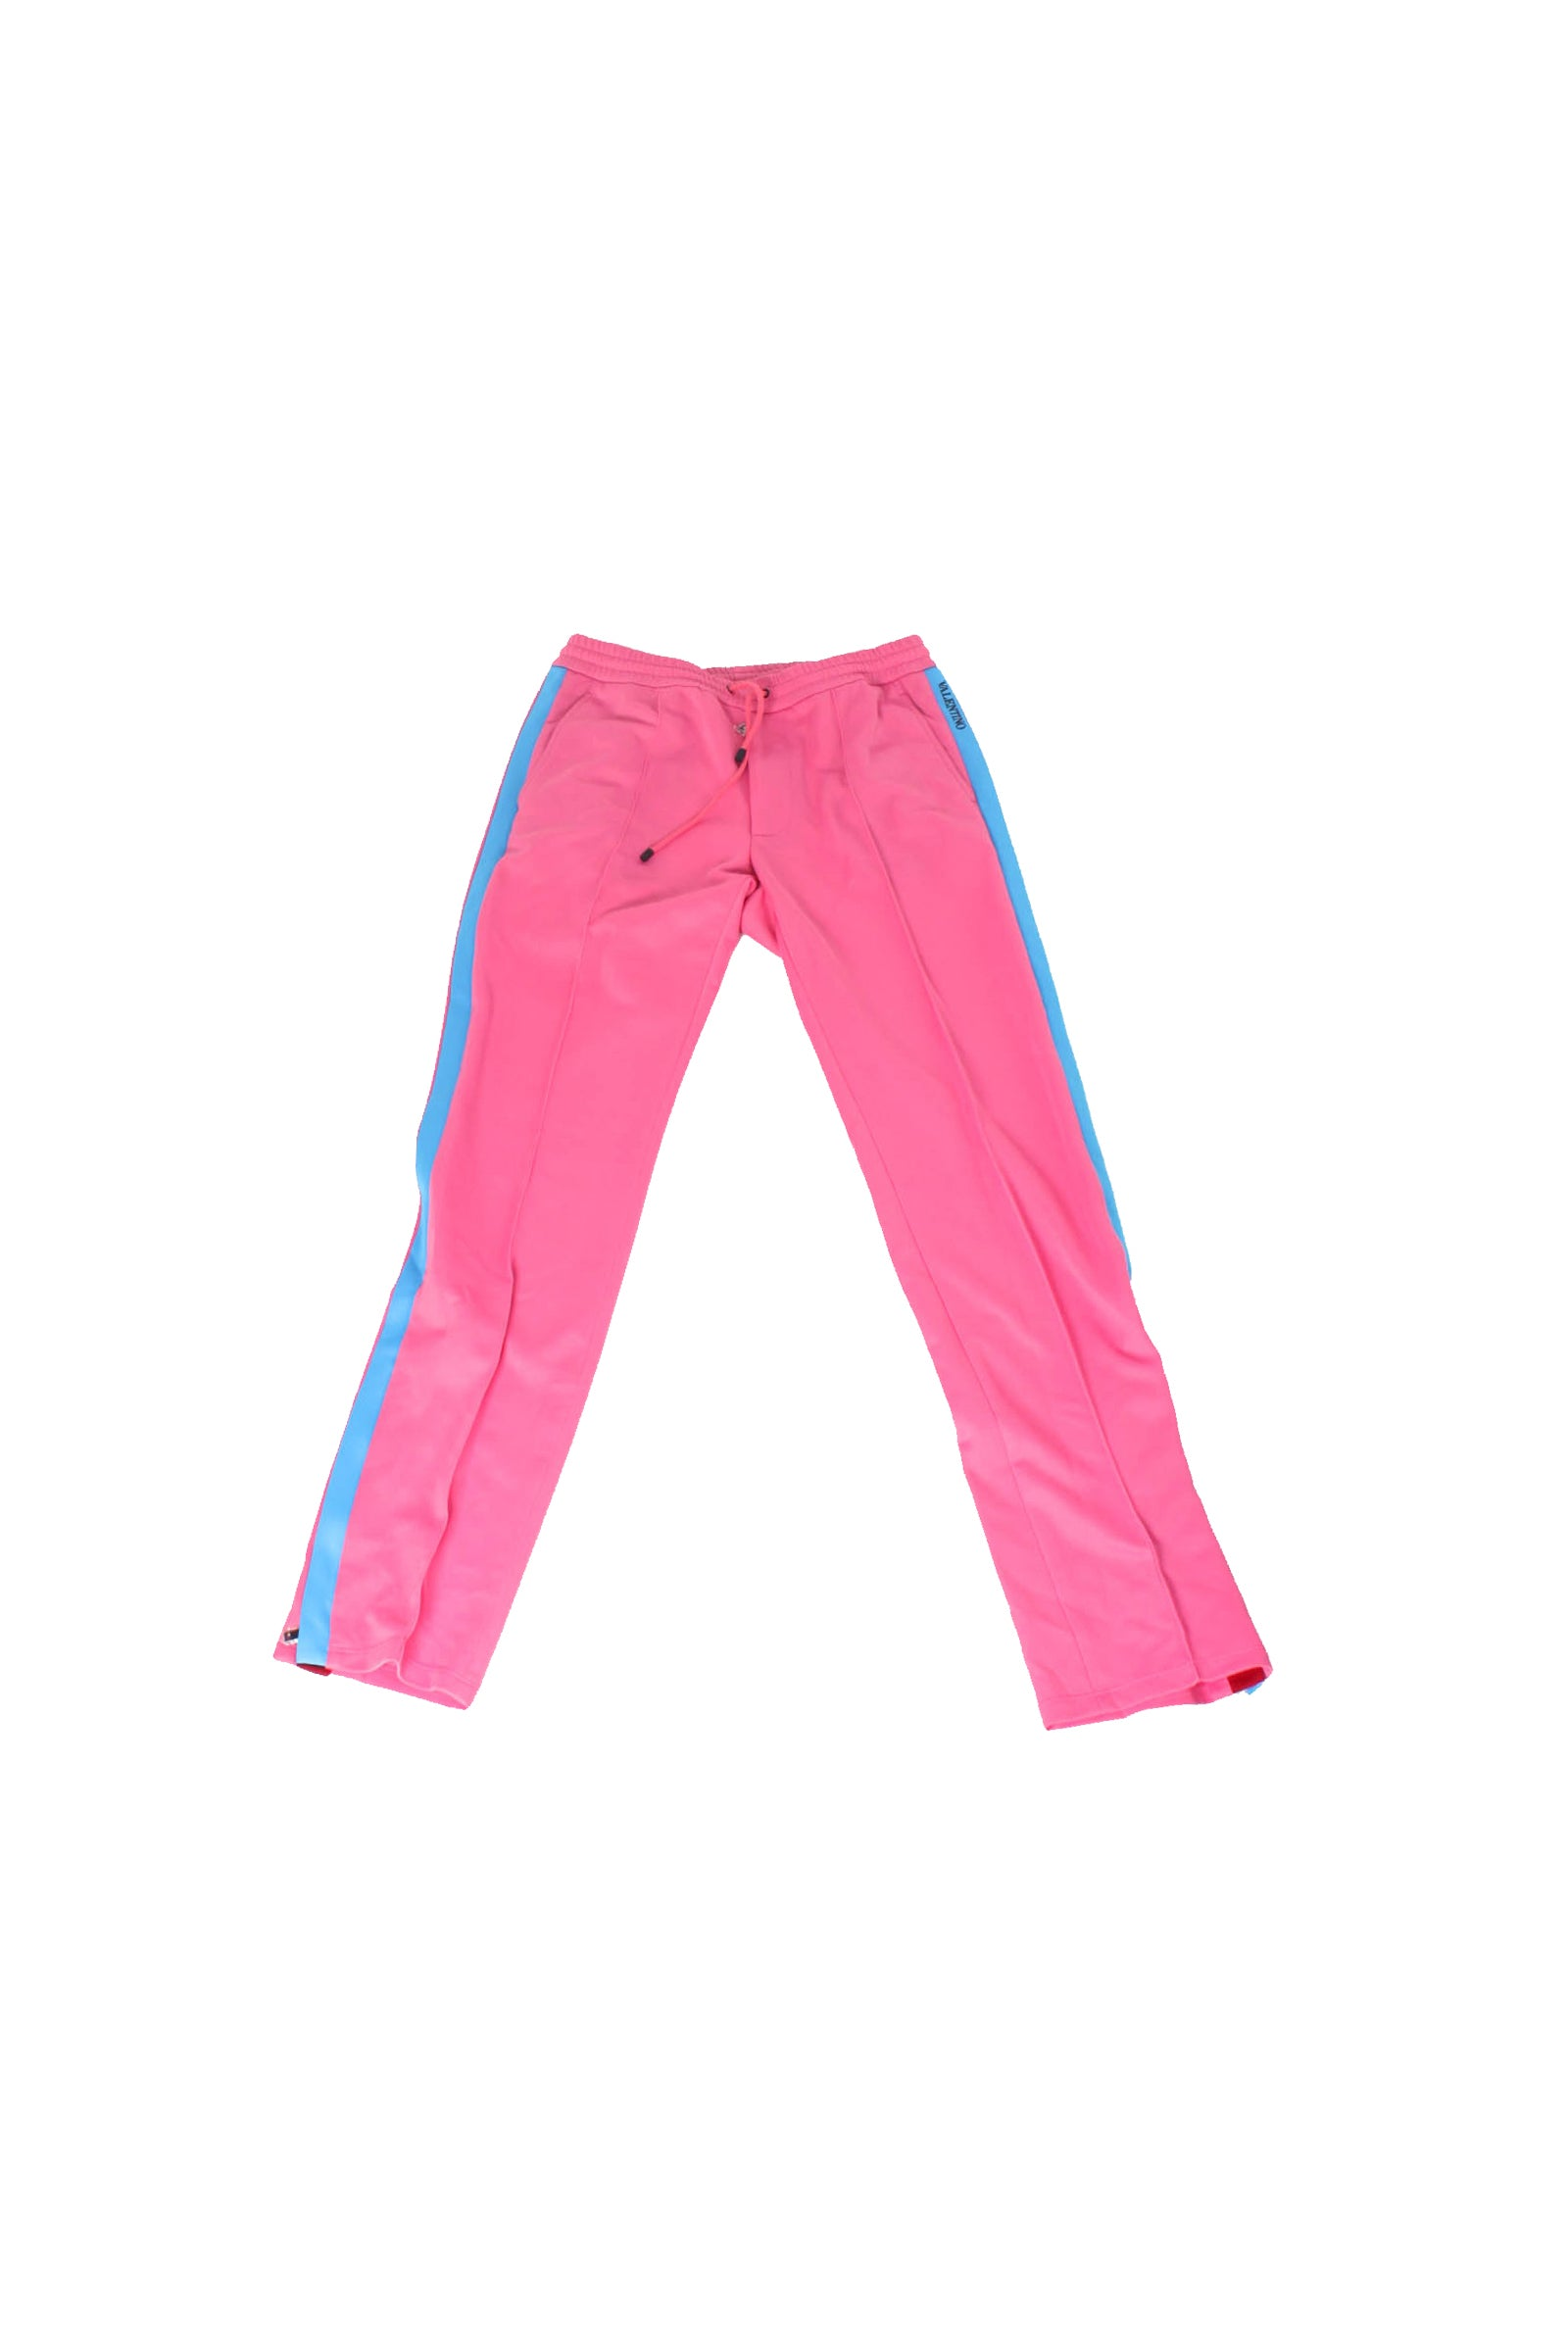 Valentino Pink Sweat Pants